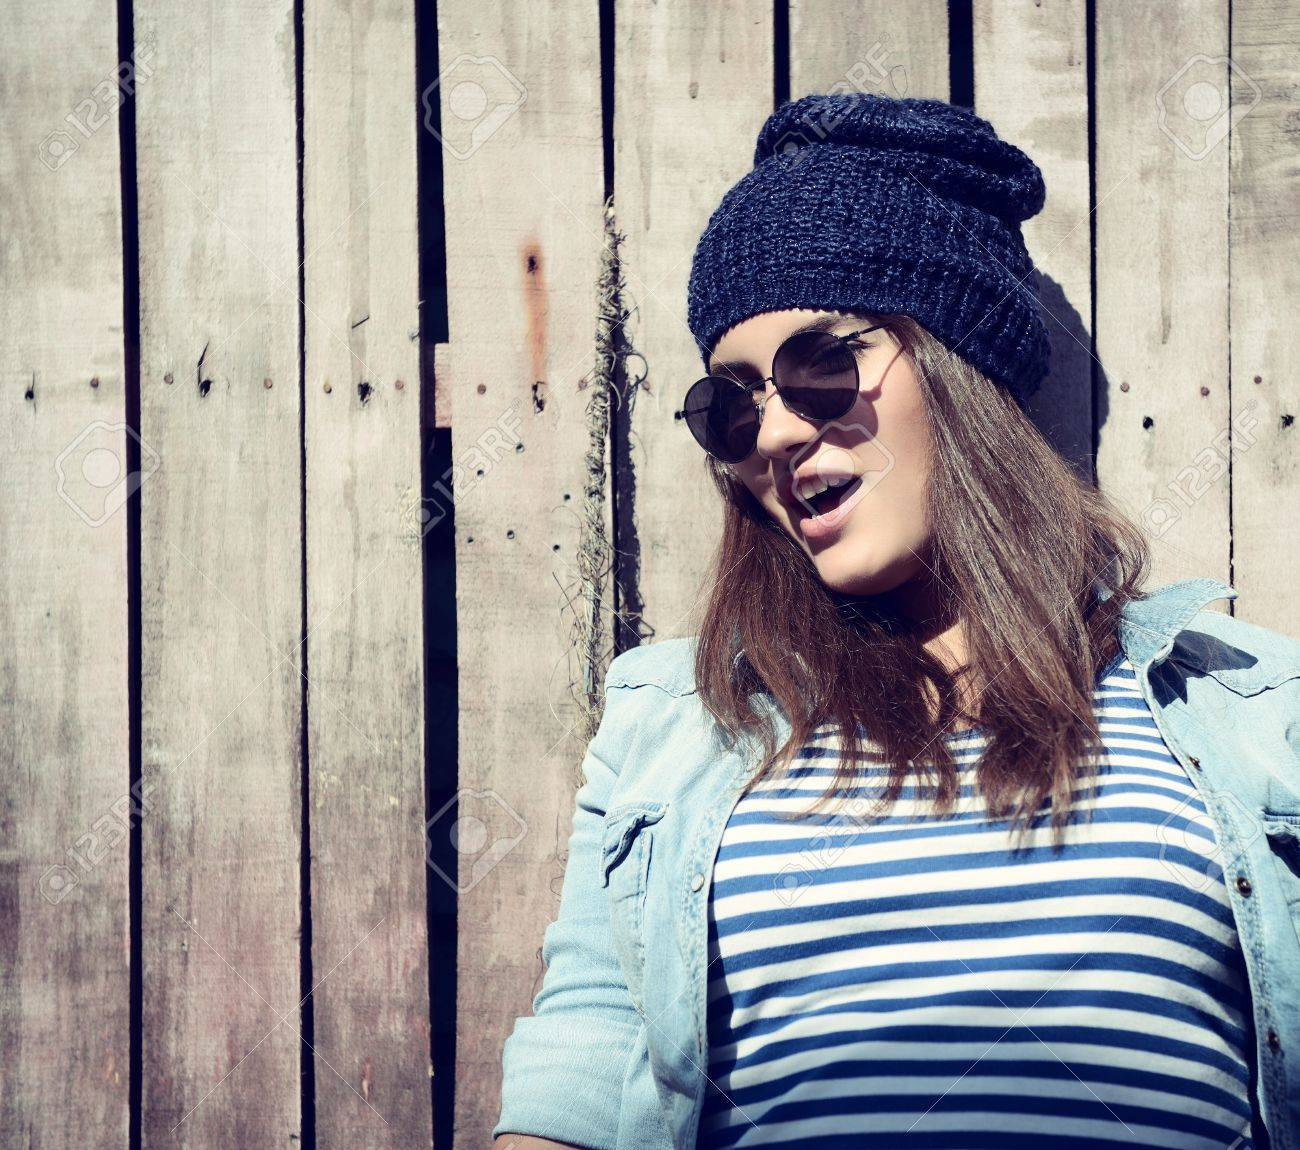 Beautiful Cool Girl In Hat And Sunglasses Against Grunge Wooden Stock Photo Picture And Royalty Free Image Image 22025069